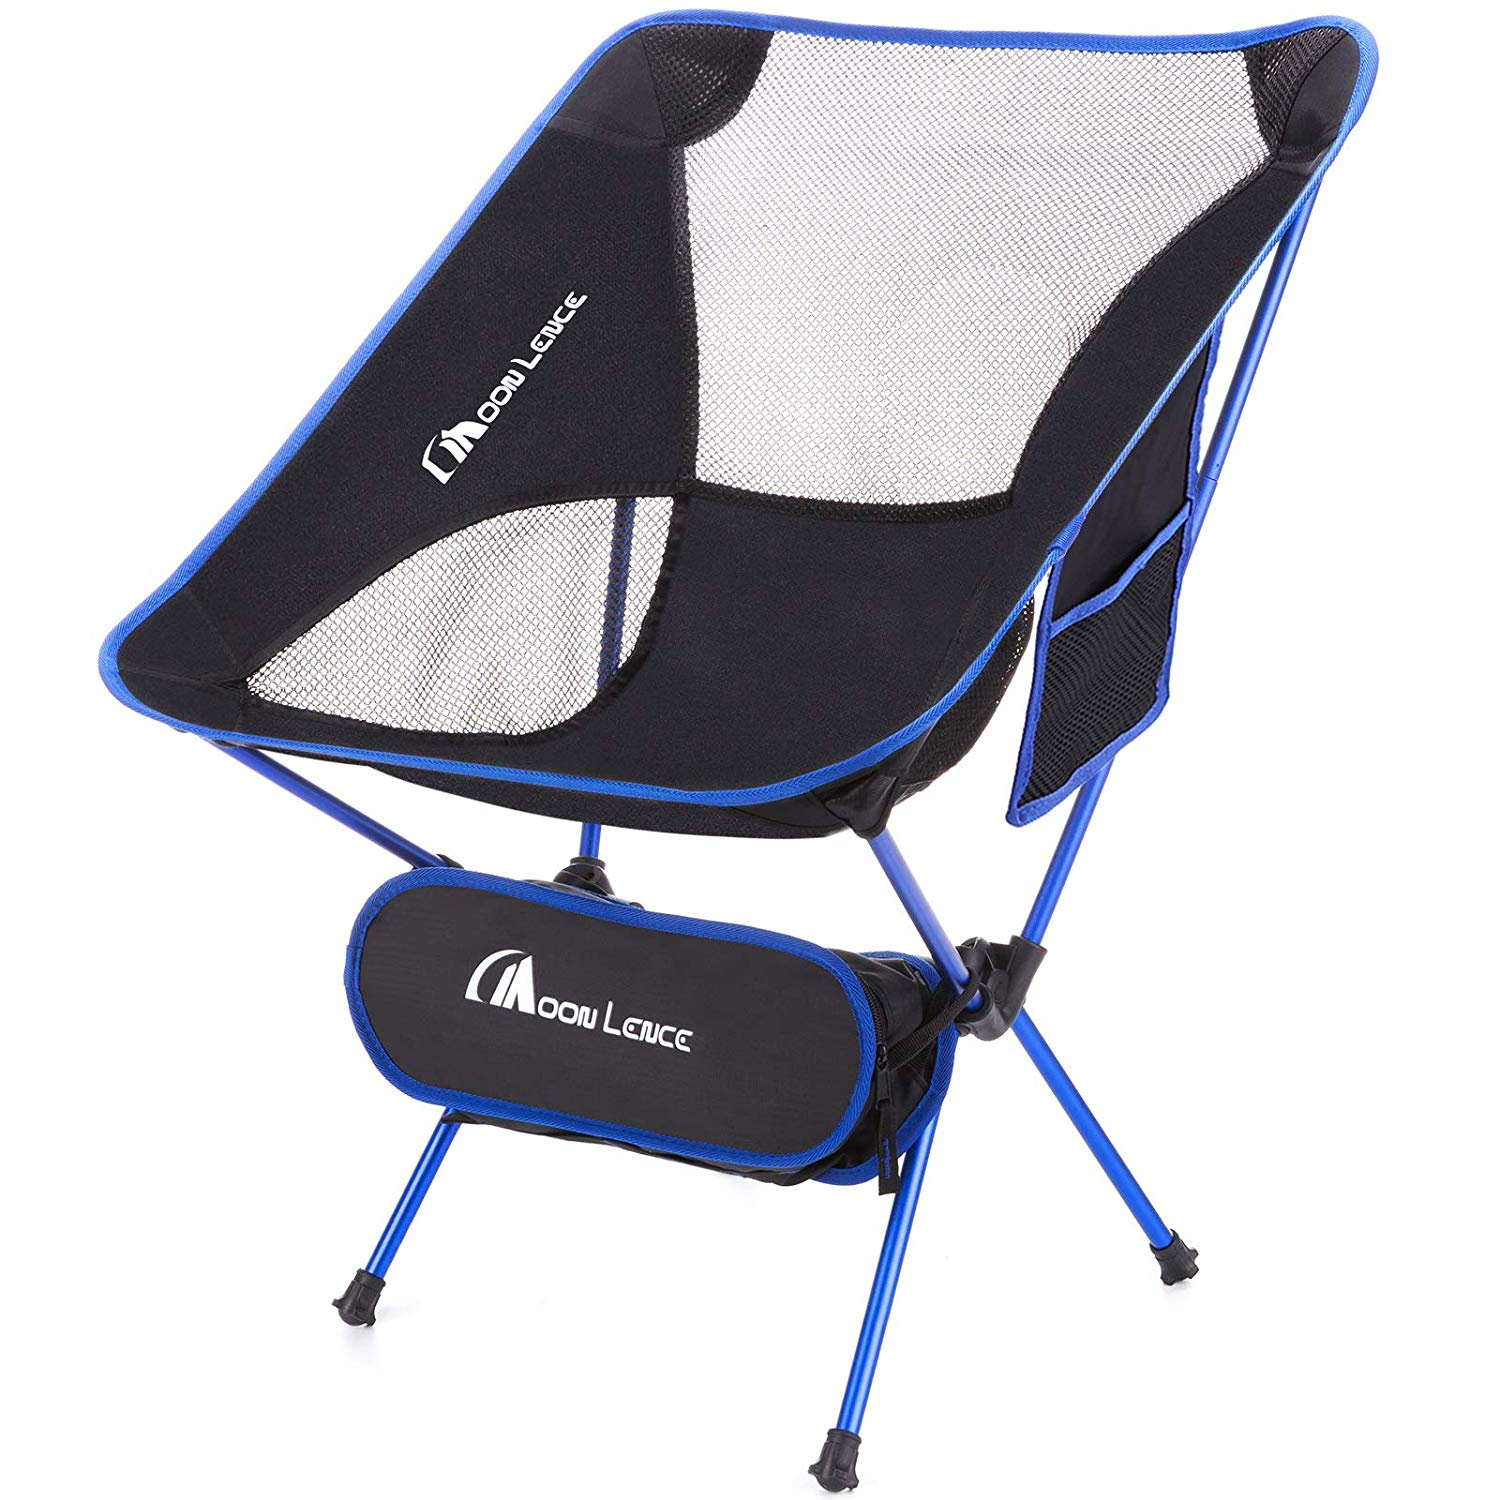 Moon Lence Outdoor Ultralight Portable Folding Chairs With Carry Bag Heavy Duty 110kg Capacity Camping Folding Chairs Beach Chairs